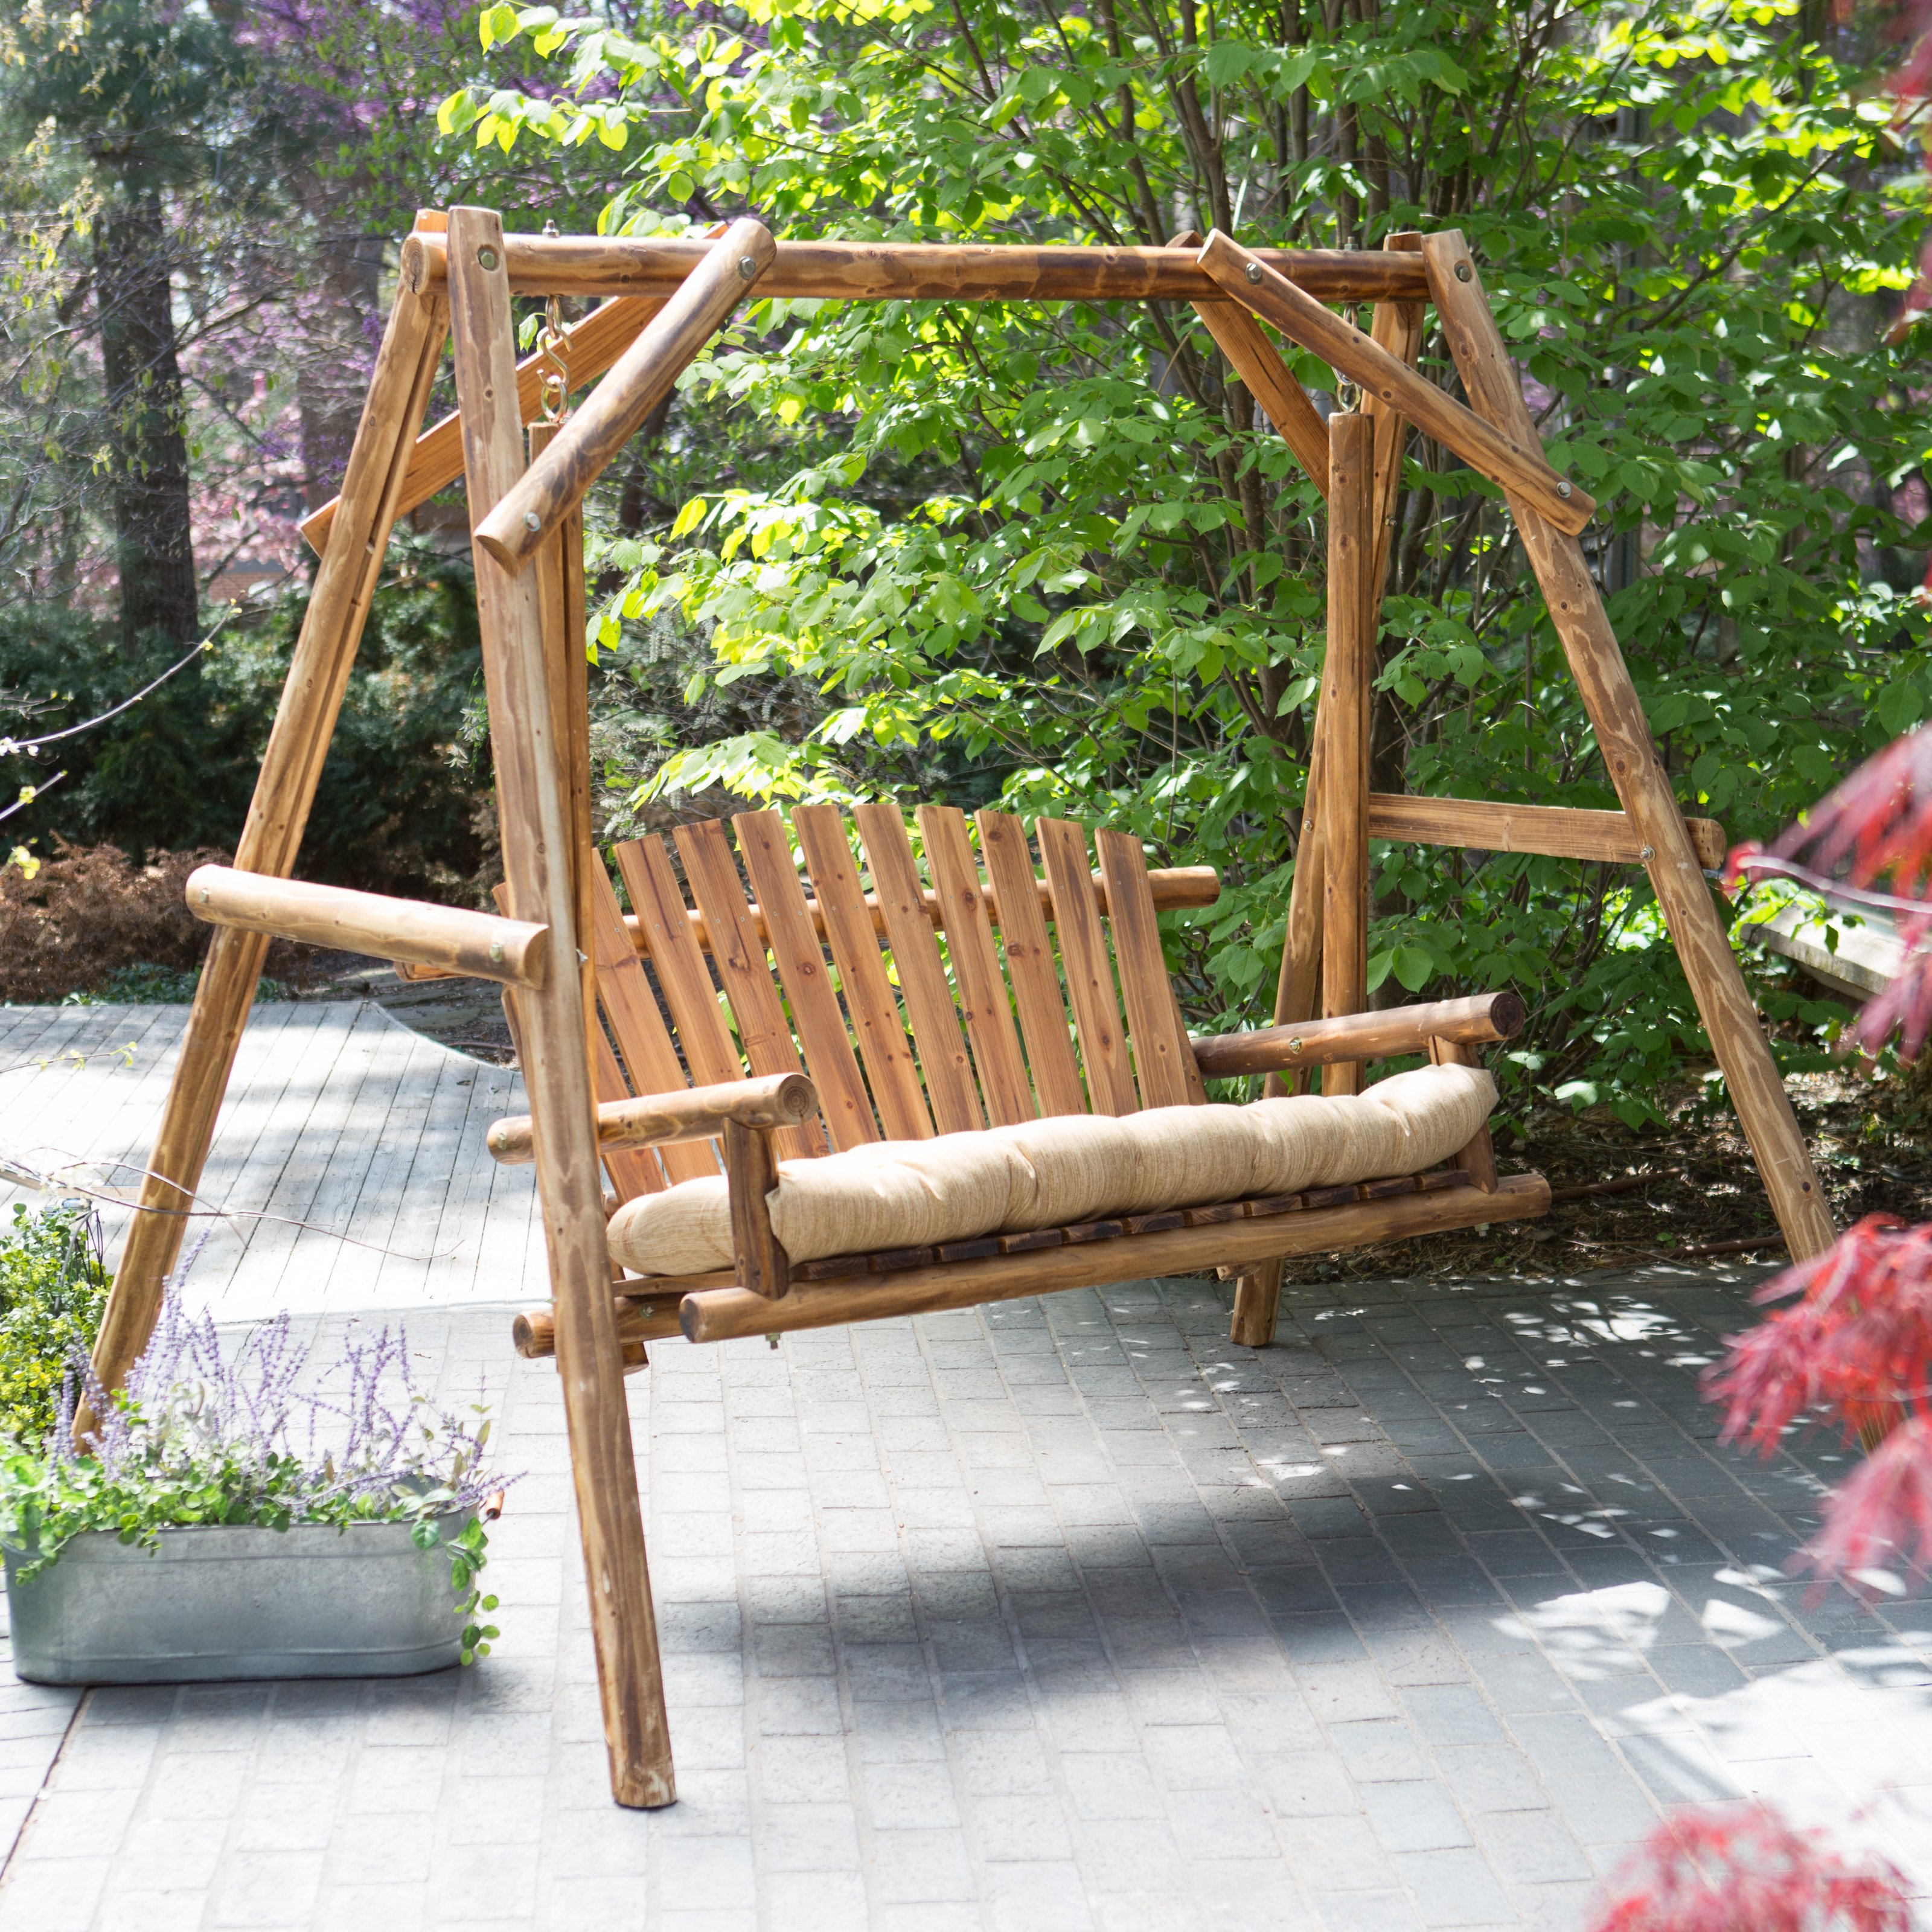 Coral Coast Rustic Oak Log Curved Back Porch Swing and A-Frame Set by Showtime Sales & Marketing Inc